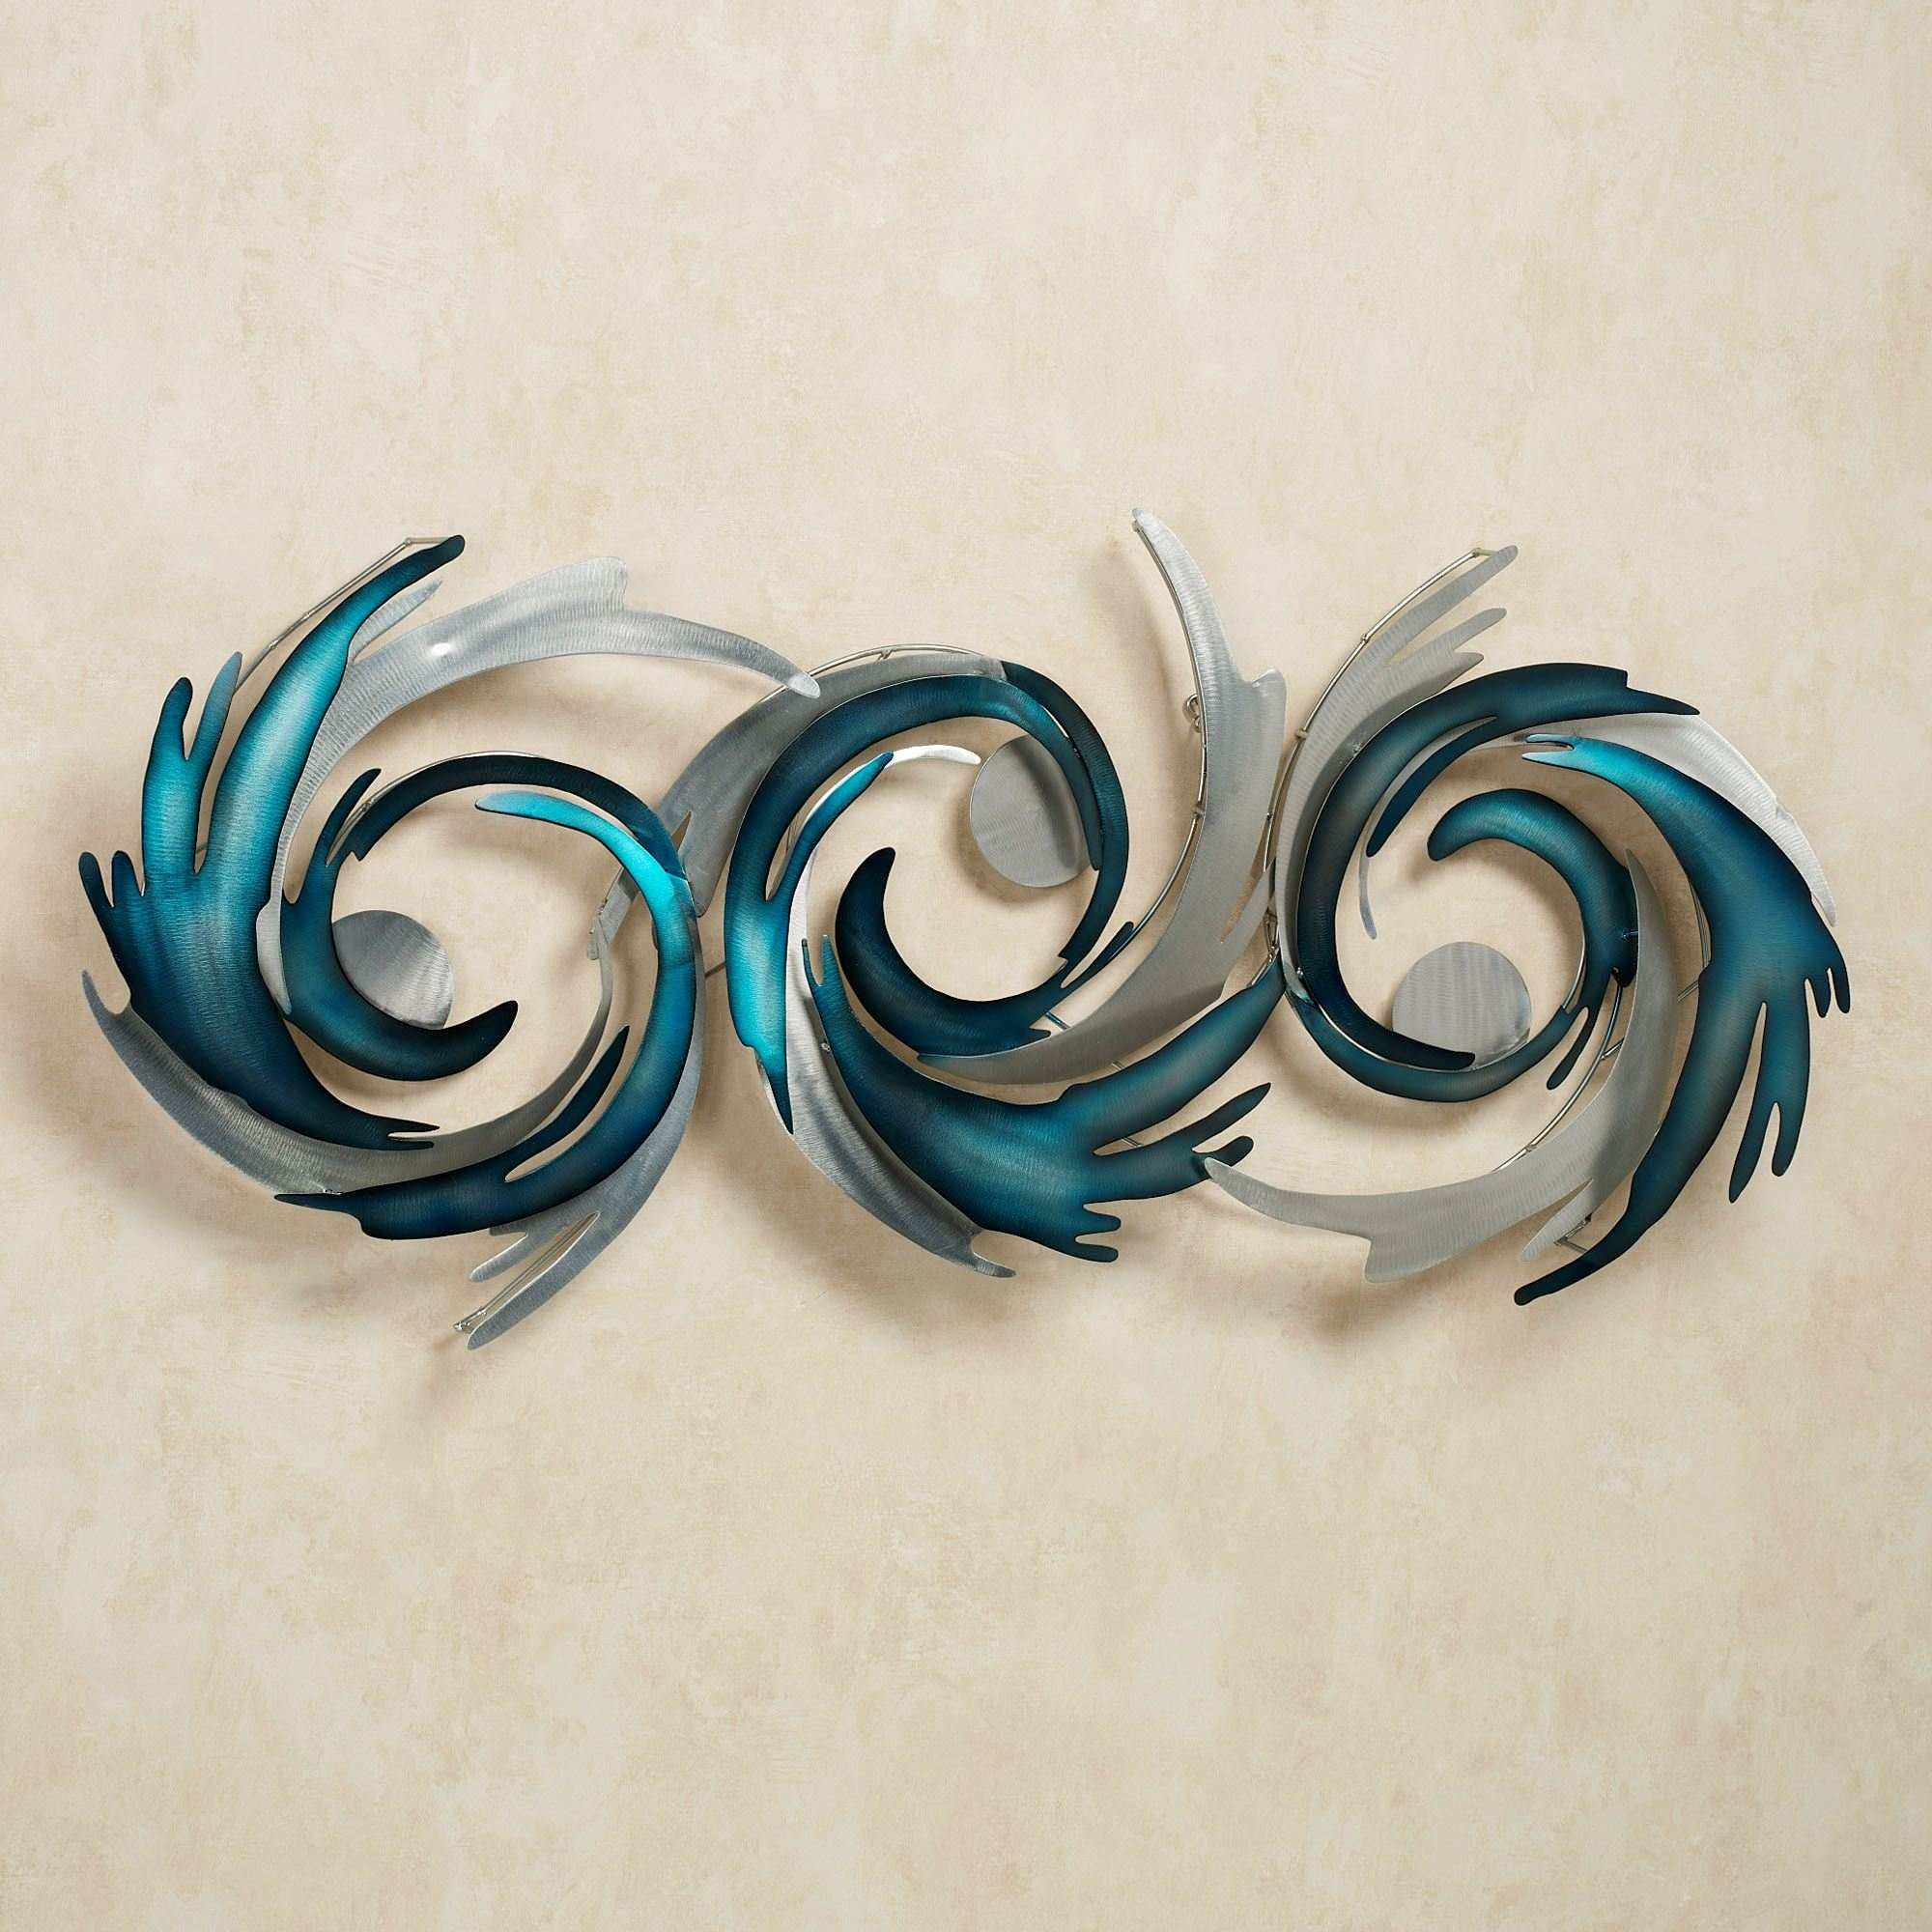 Blue Metal Wall Art Mesmerizing Perfect Storm Metal Wall Sculpturejasonw Studios Design Decoration